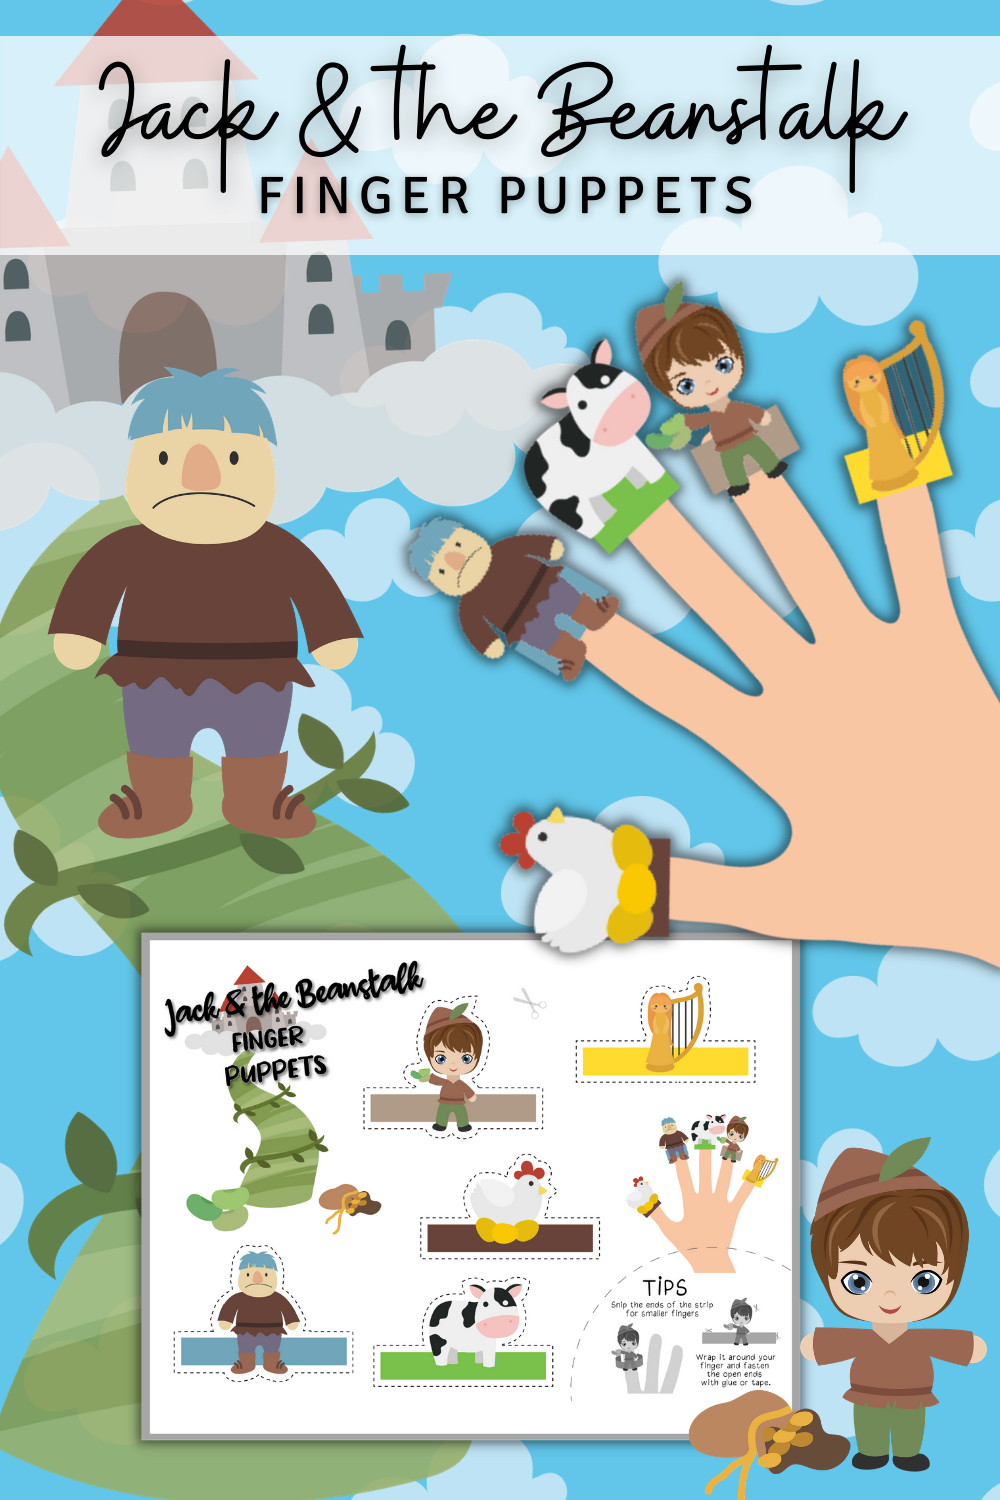 Jack and the Beanstalk Friends Finger Puppets PIN 2 png